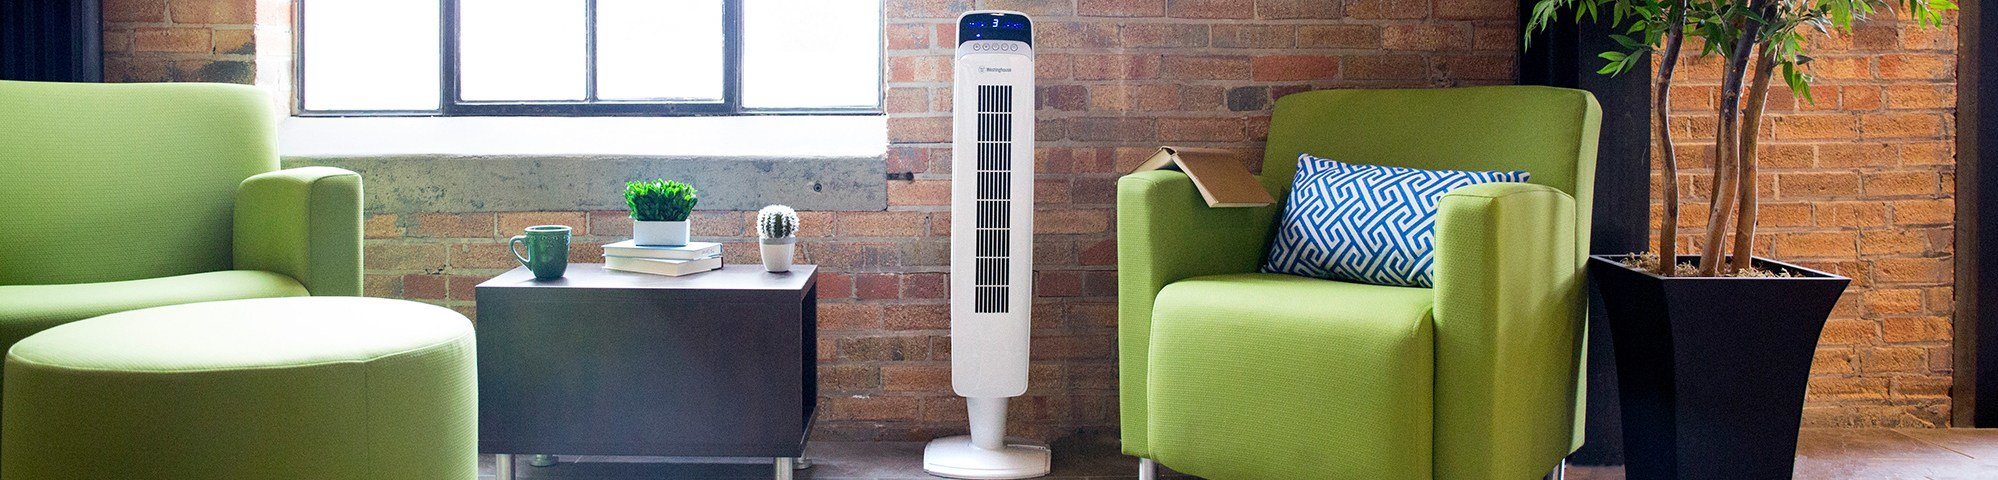 Best Tower Fan 2019 Reviews Of Quiet Oscillating Room Fans With Pictures